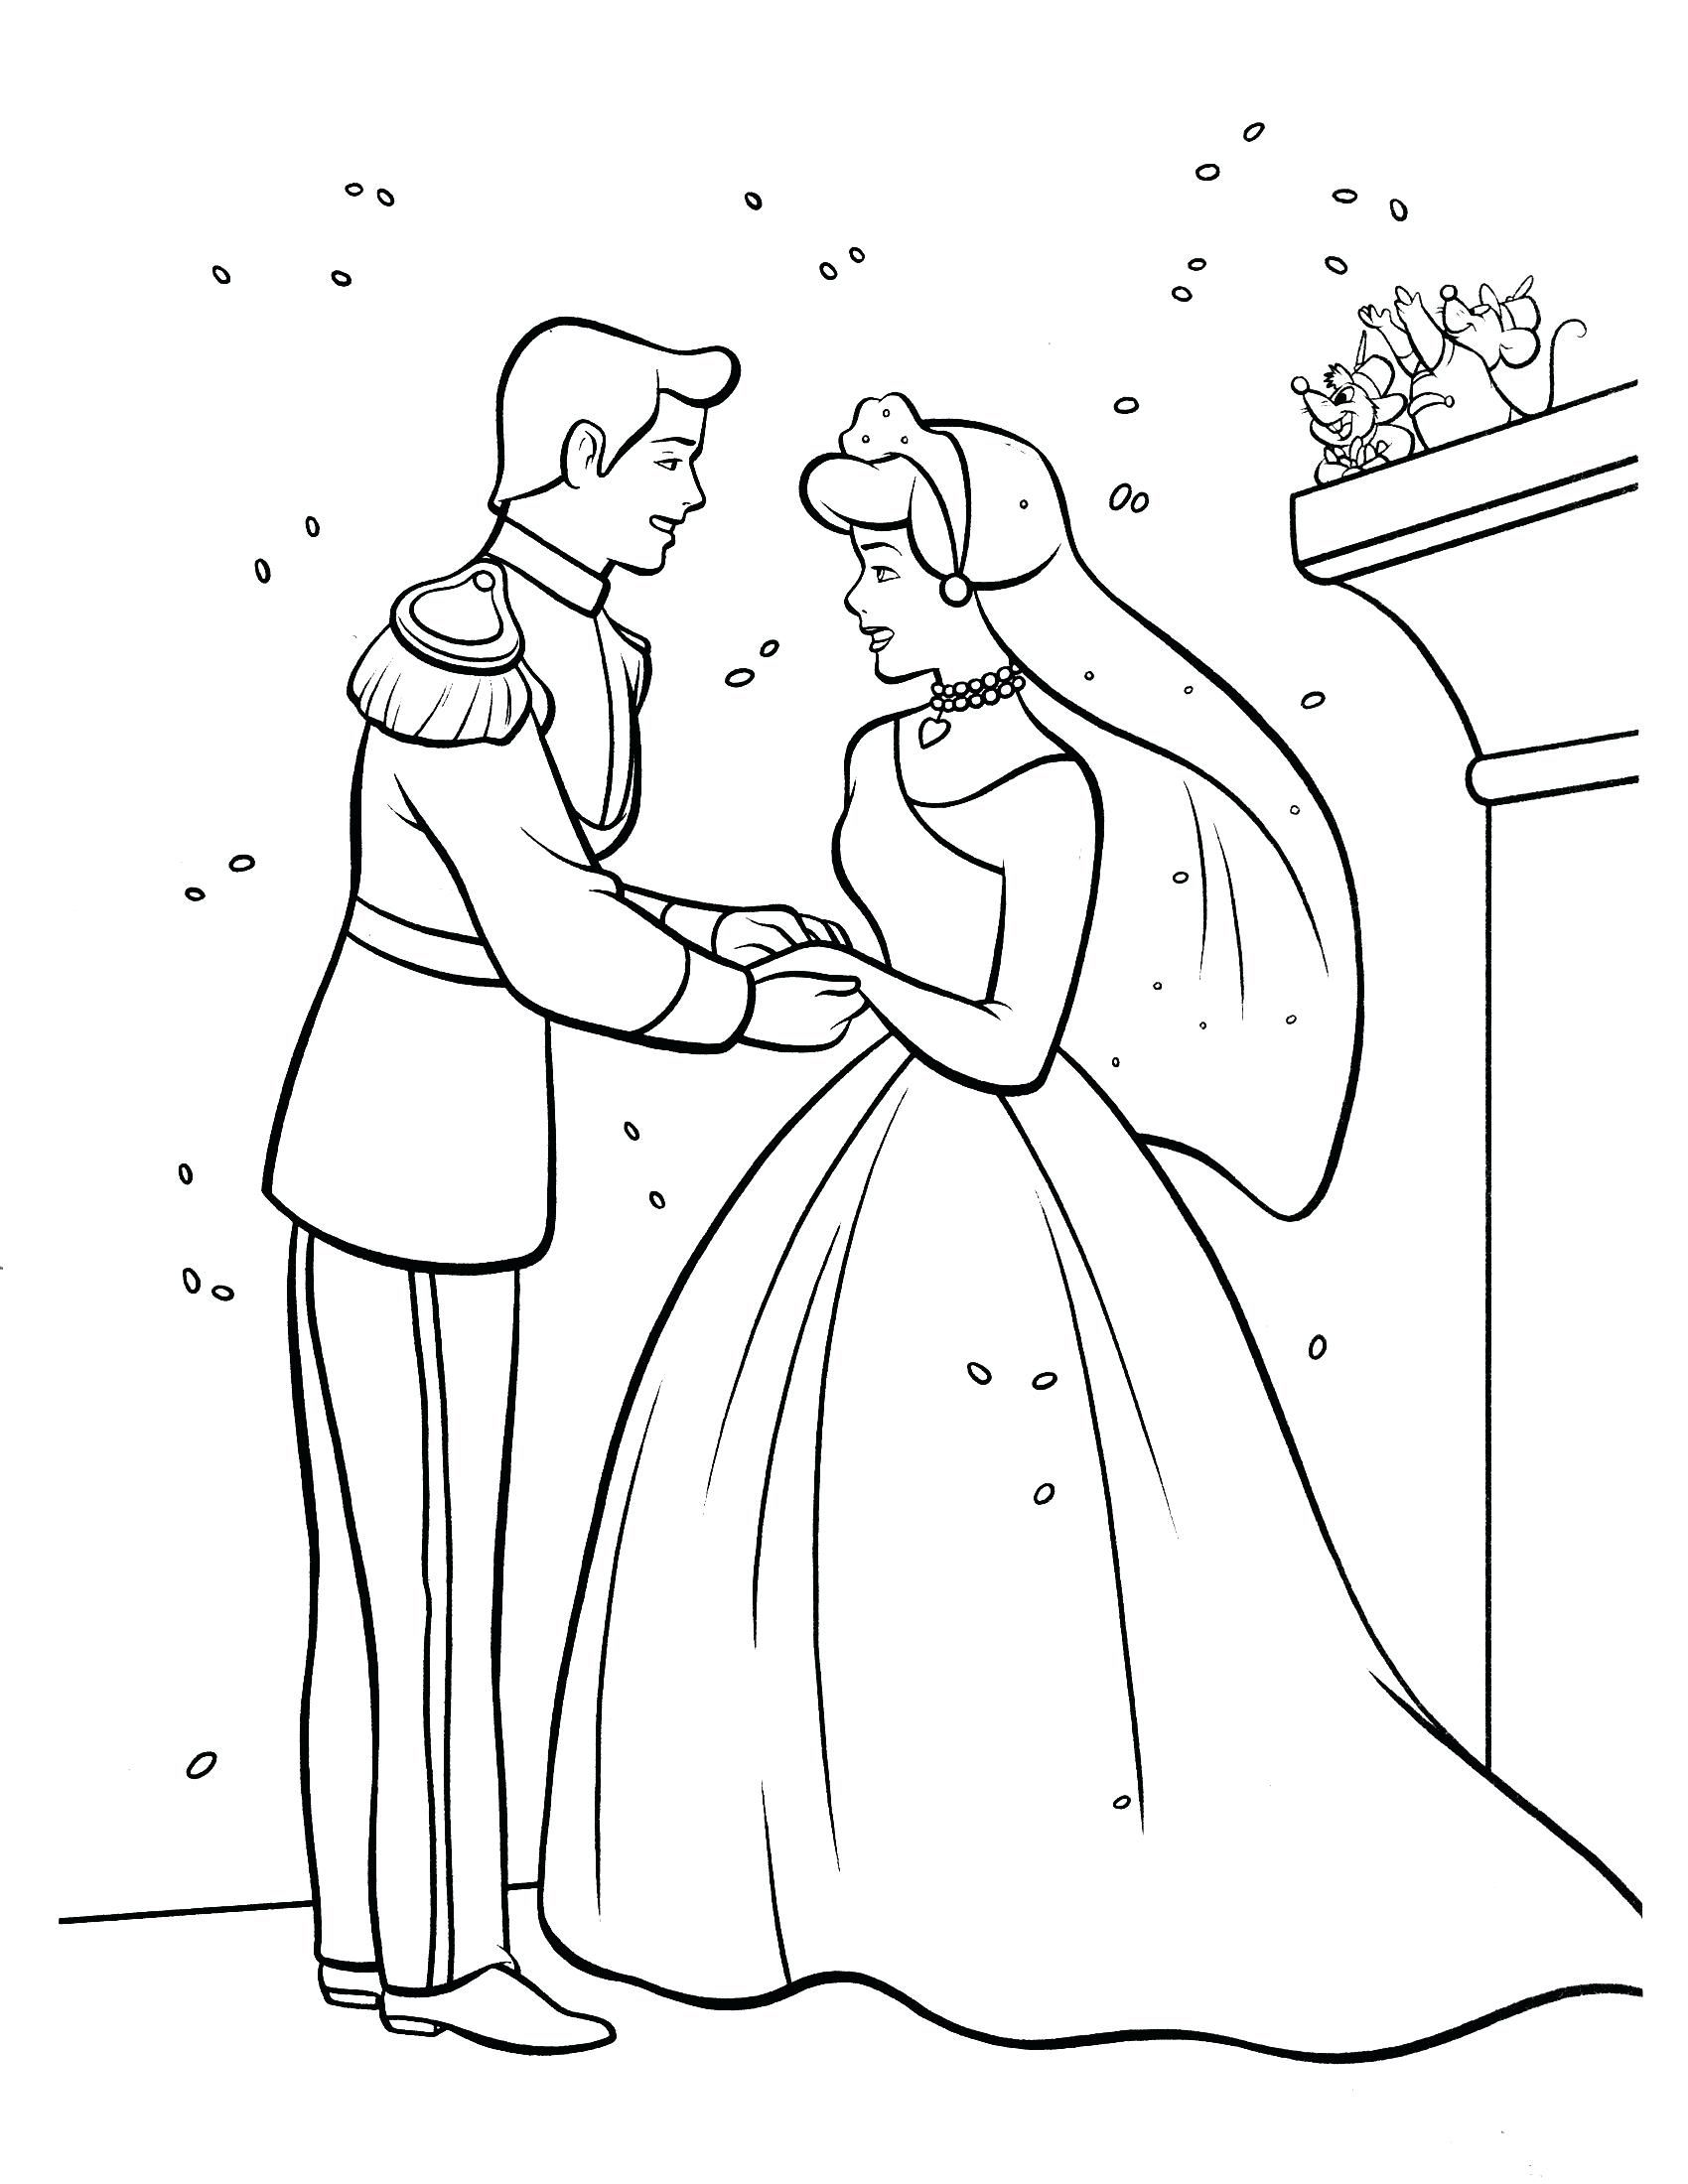 Coloring Pages Cinderella Coloring Page Cinderella Coloring Pages Wedding Coloring Pages Descendants Coloring Pages